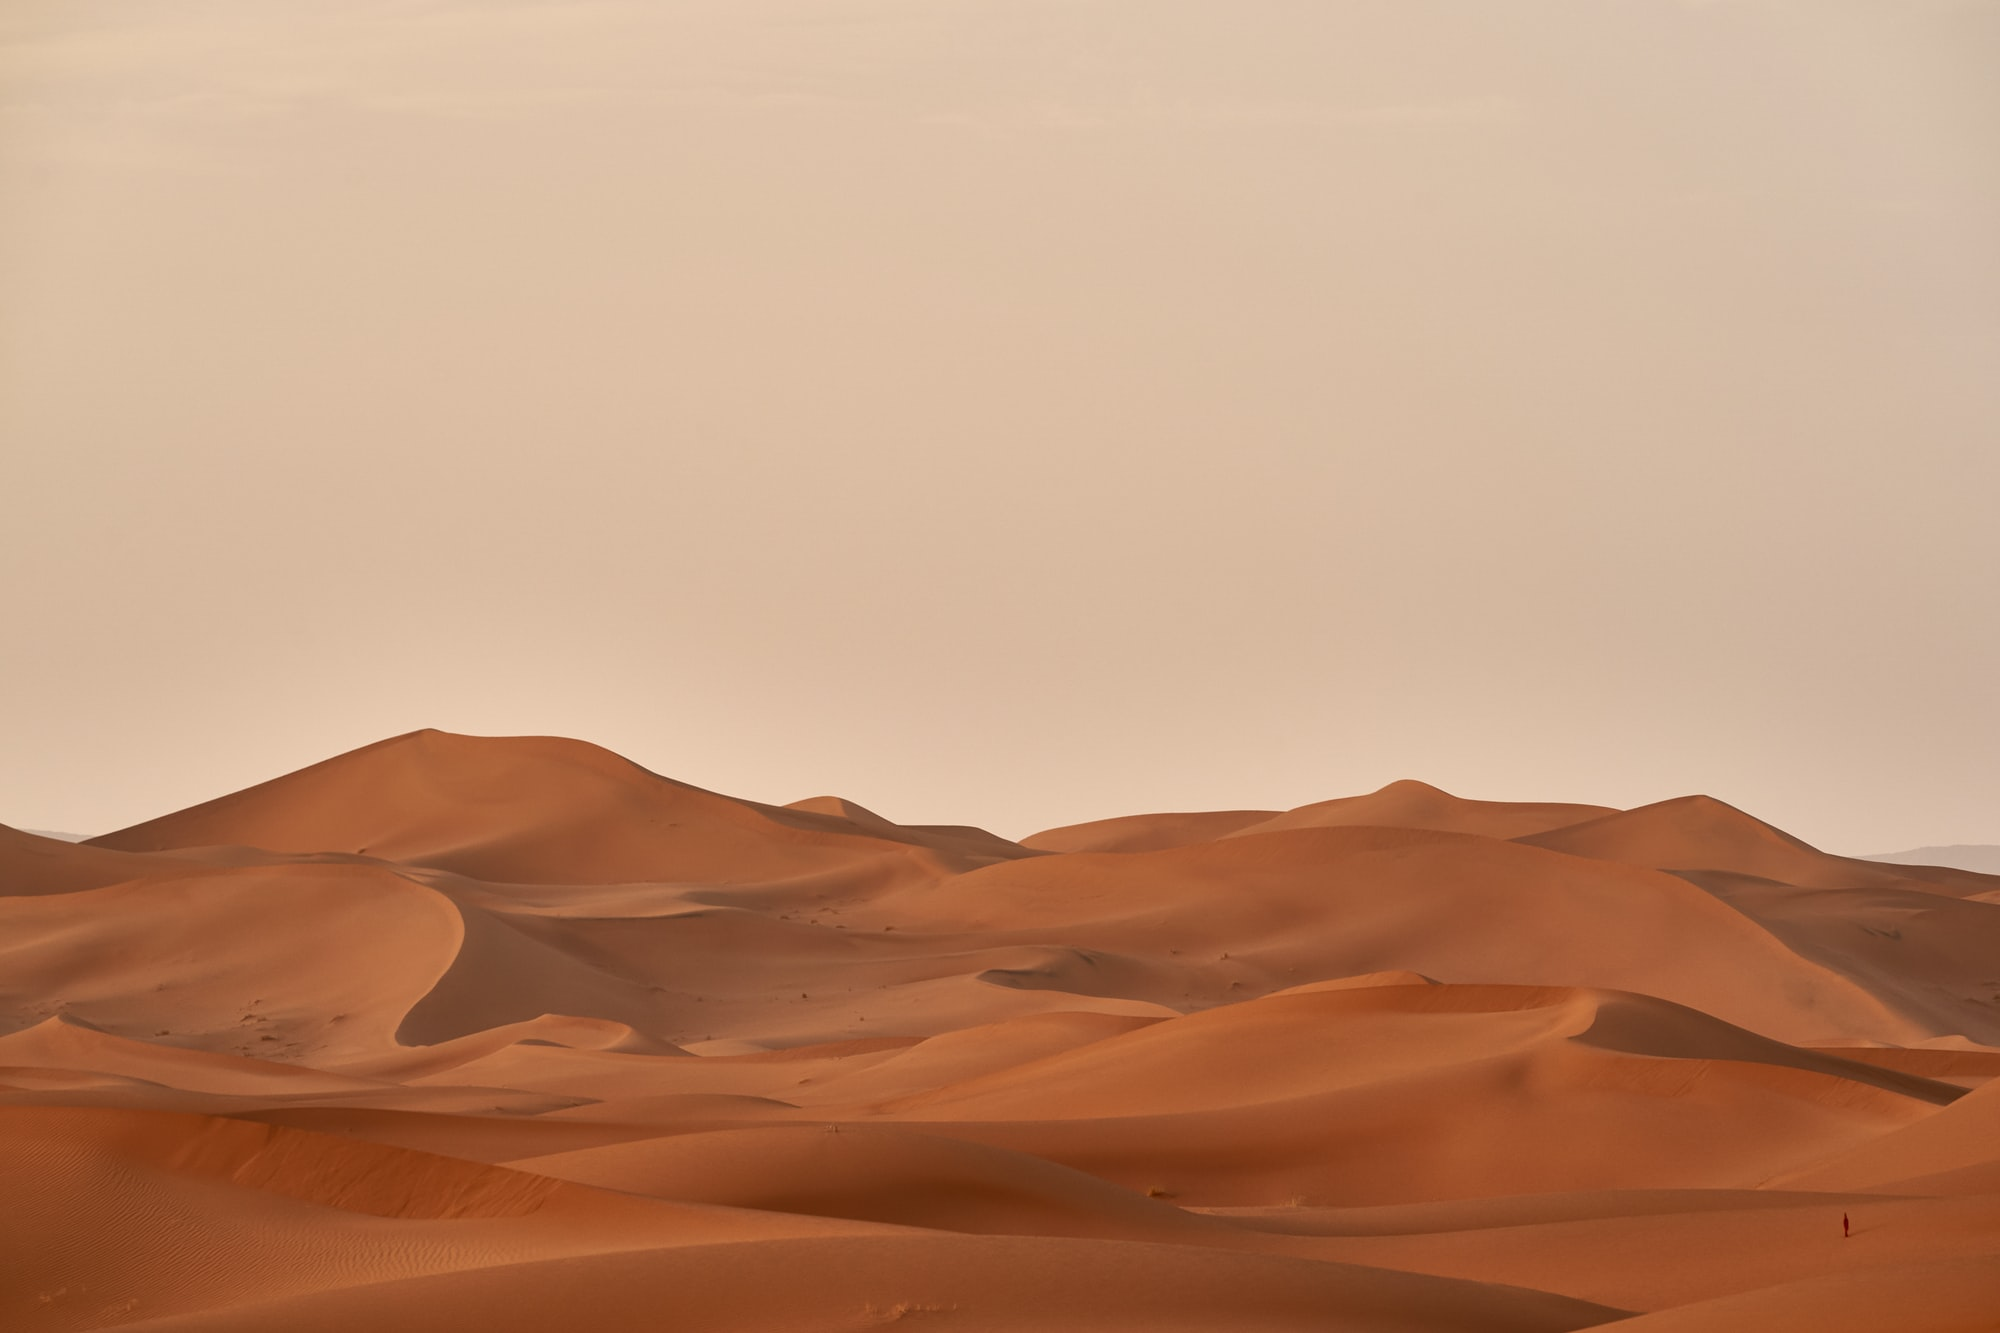 after a sand storm the the air cleans up quickly